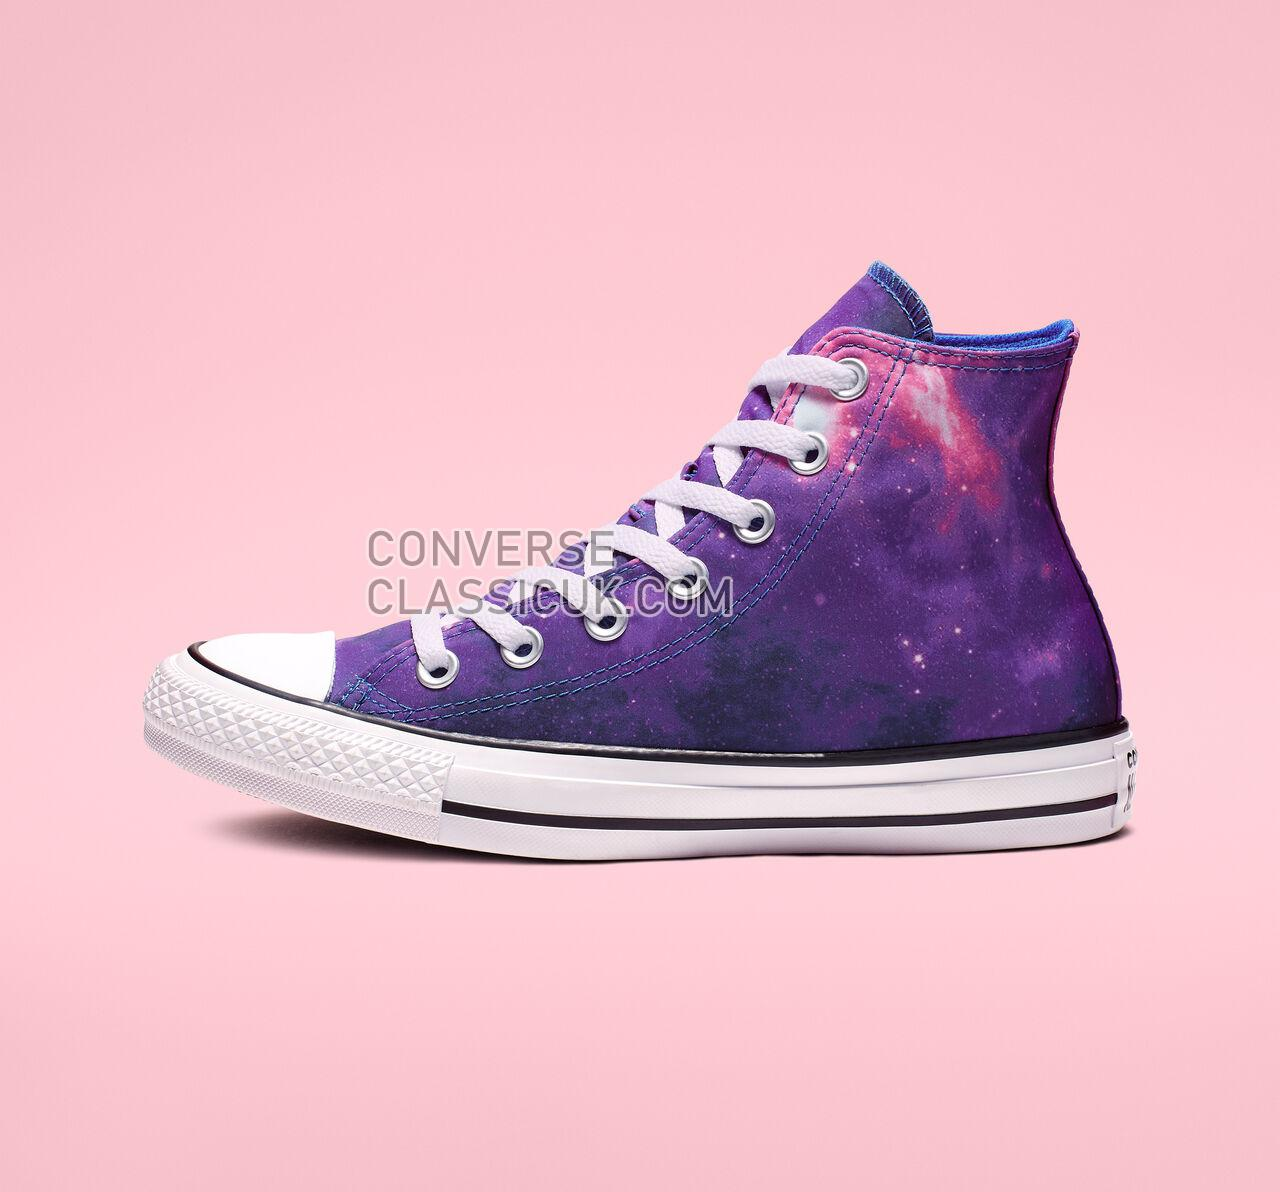 Converse Chuck Taylor All Star Miss Galaxy High Top Womens 565207F Hyper Royal/Mod Pink/White Shoes